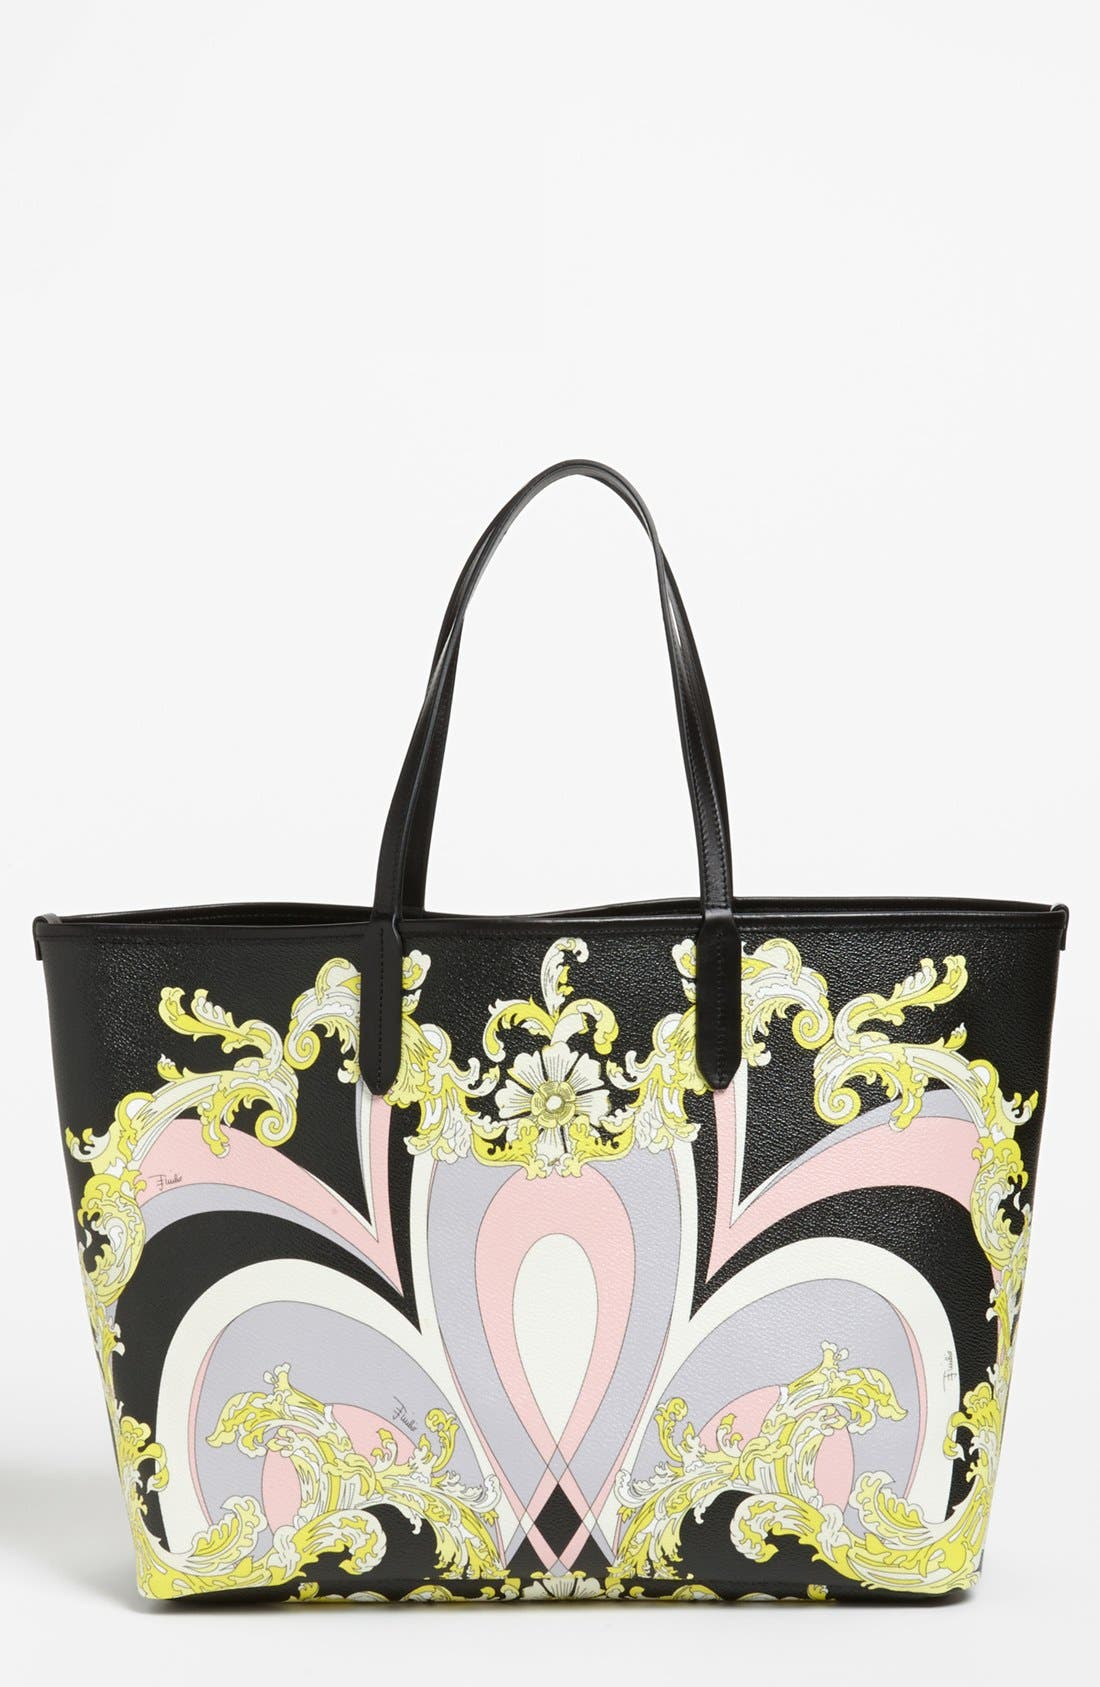 Alternate Image 1 Selected - Emilio Pucci 'Large' Shopping Tote